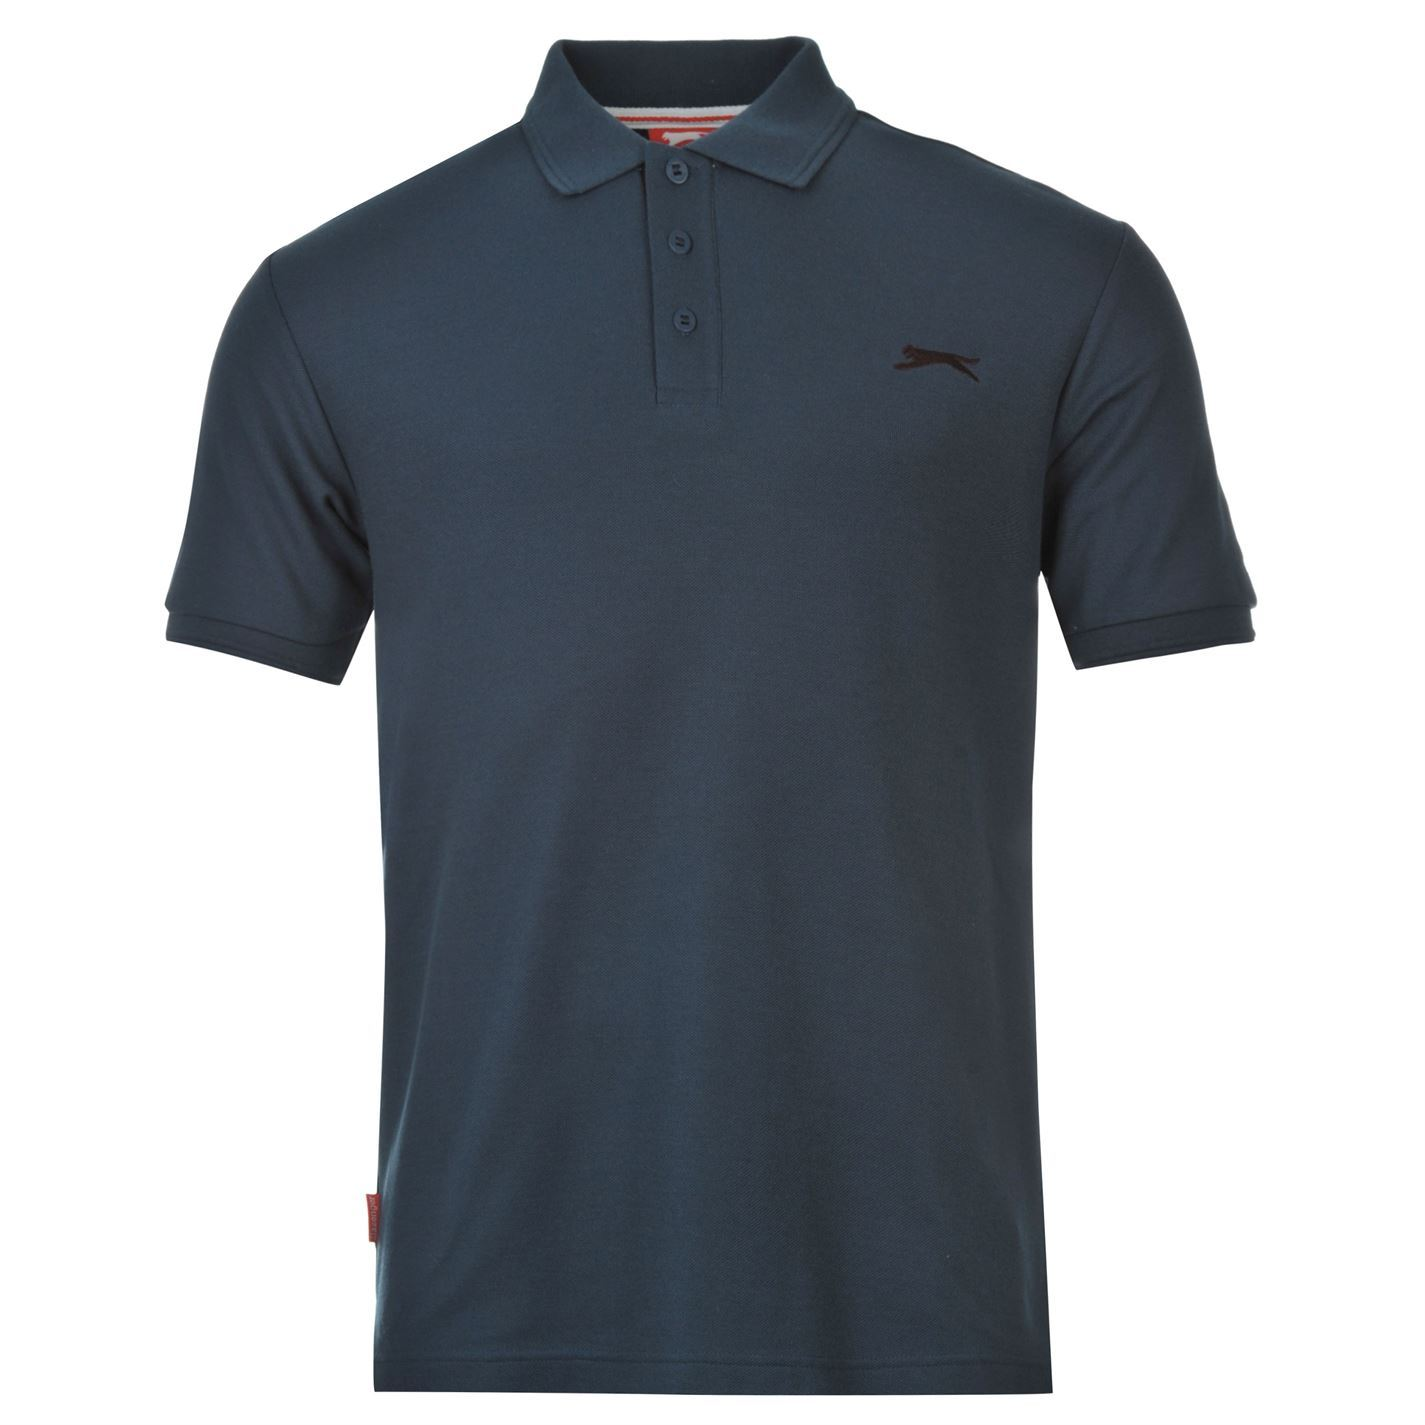 Slazenger plain polo shirt mens steel blue sports top tee for Simply for sports brand t shirts